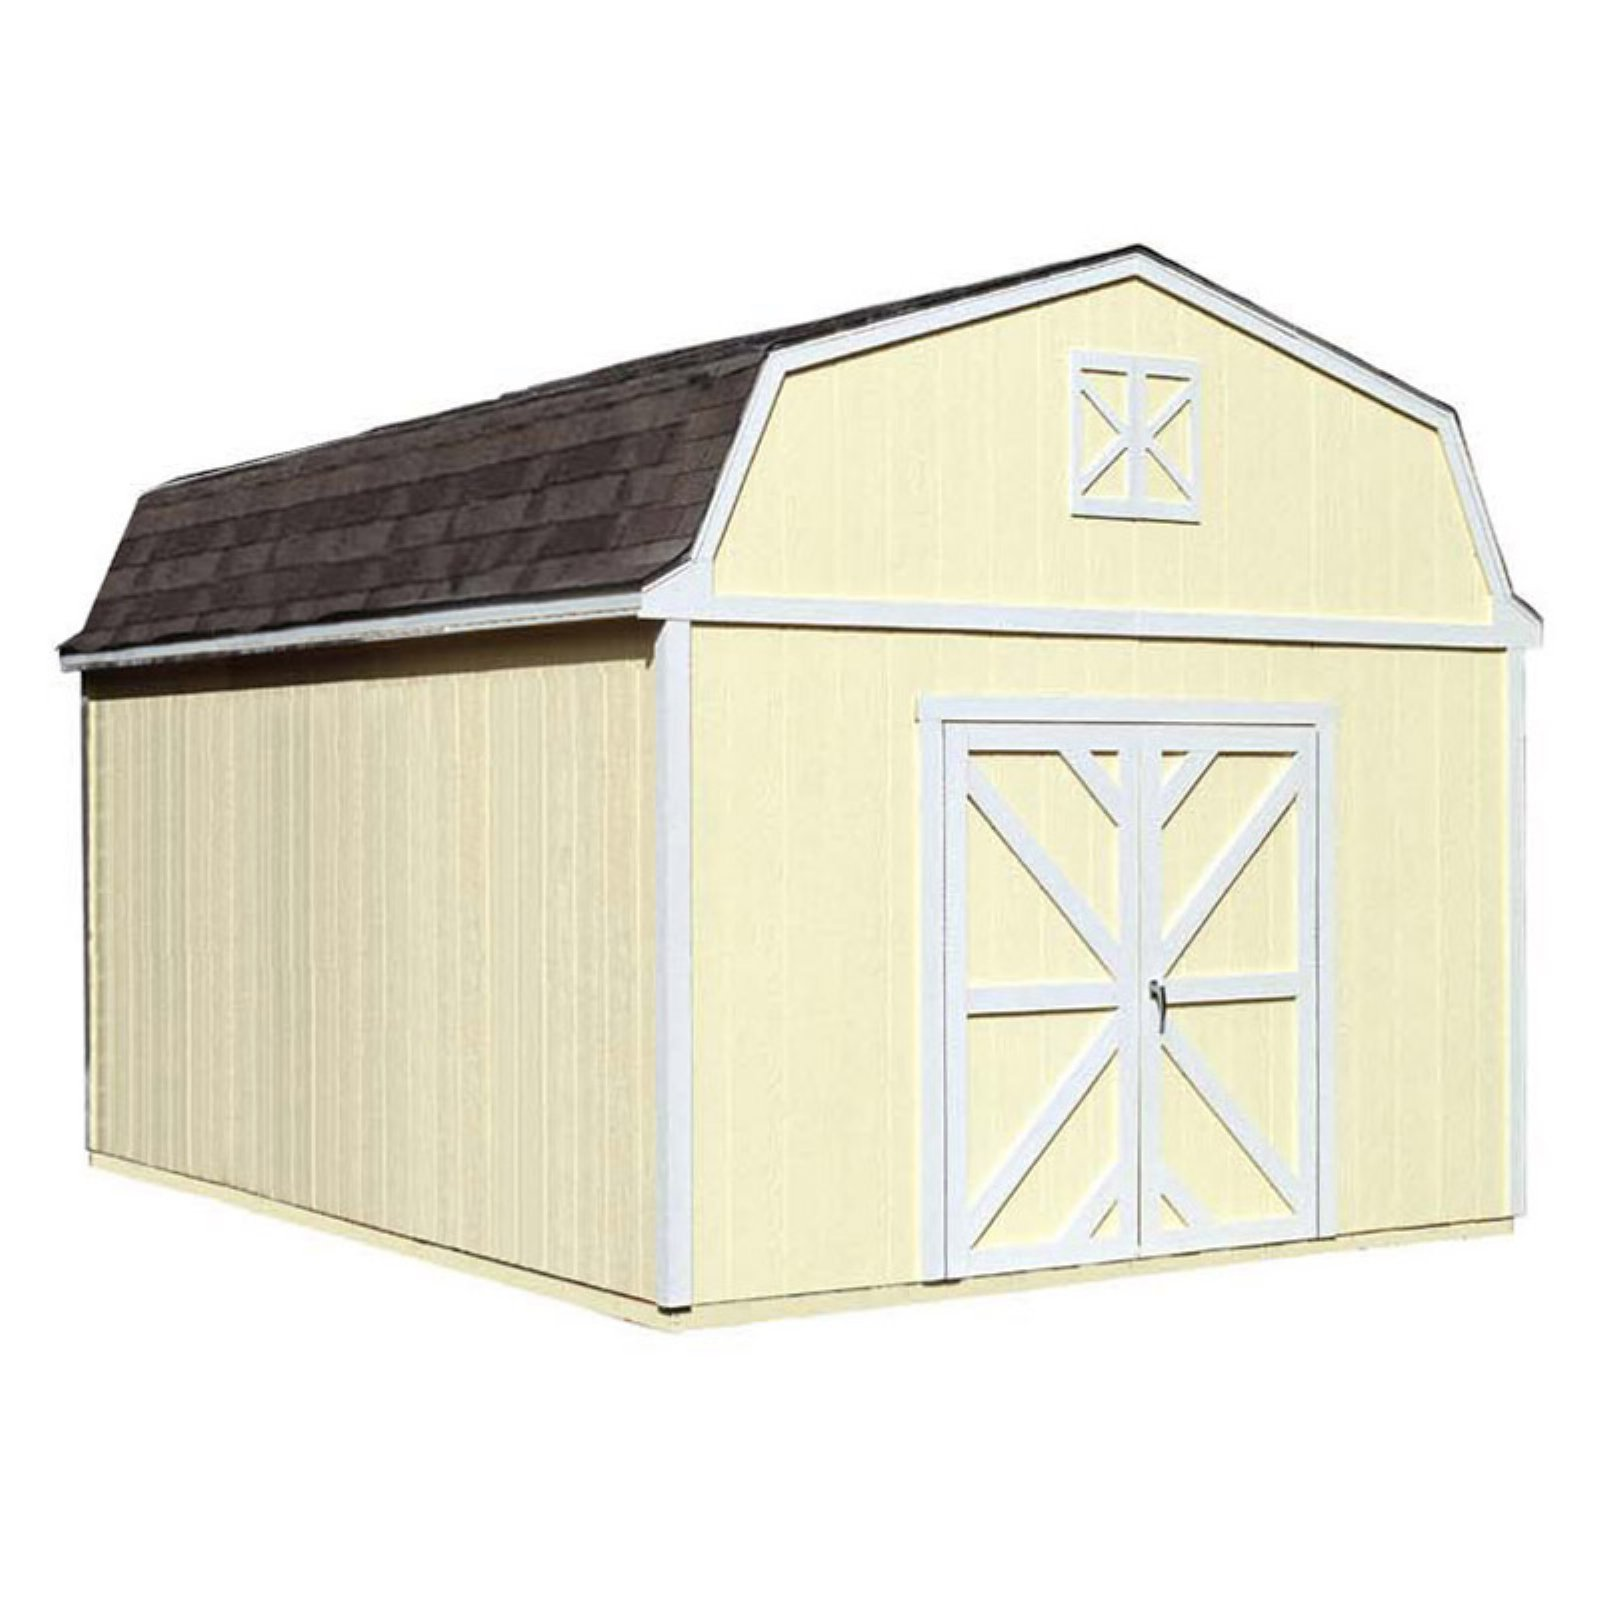 Handy Home Sequoia Storage Shed - 12 x 16 ft.